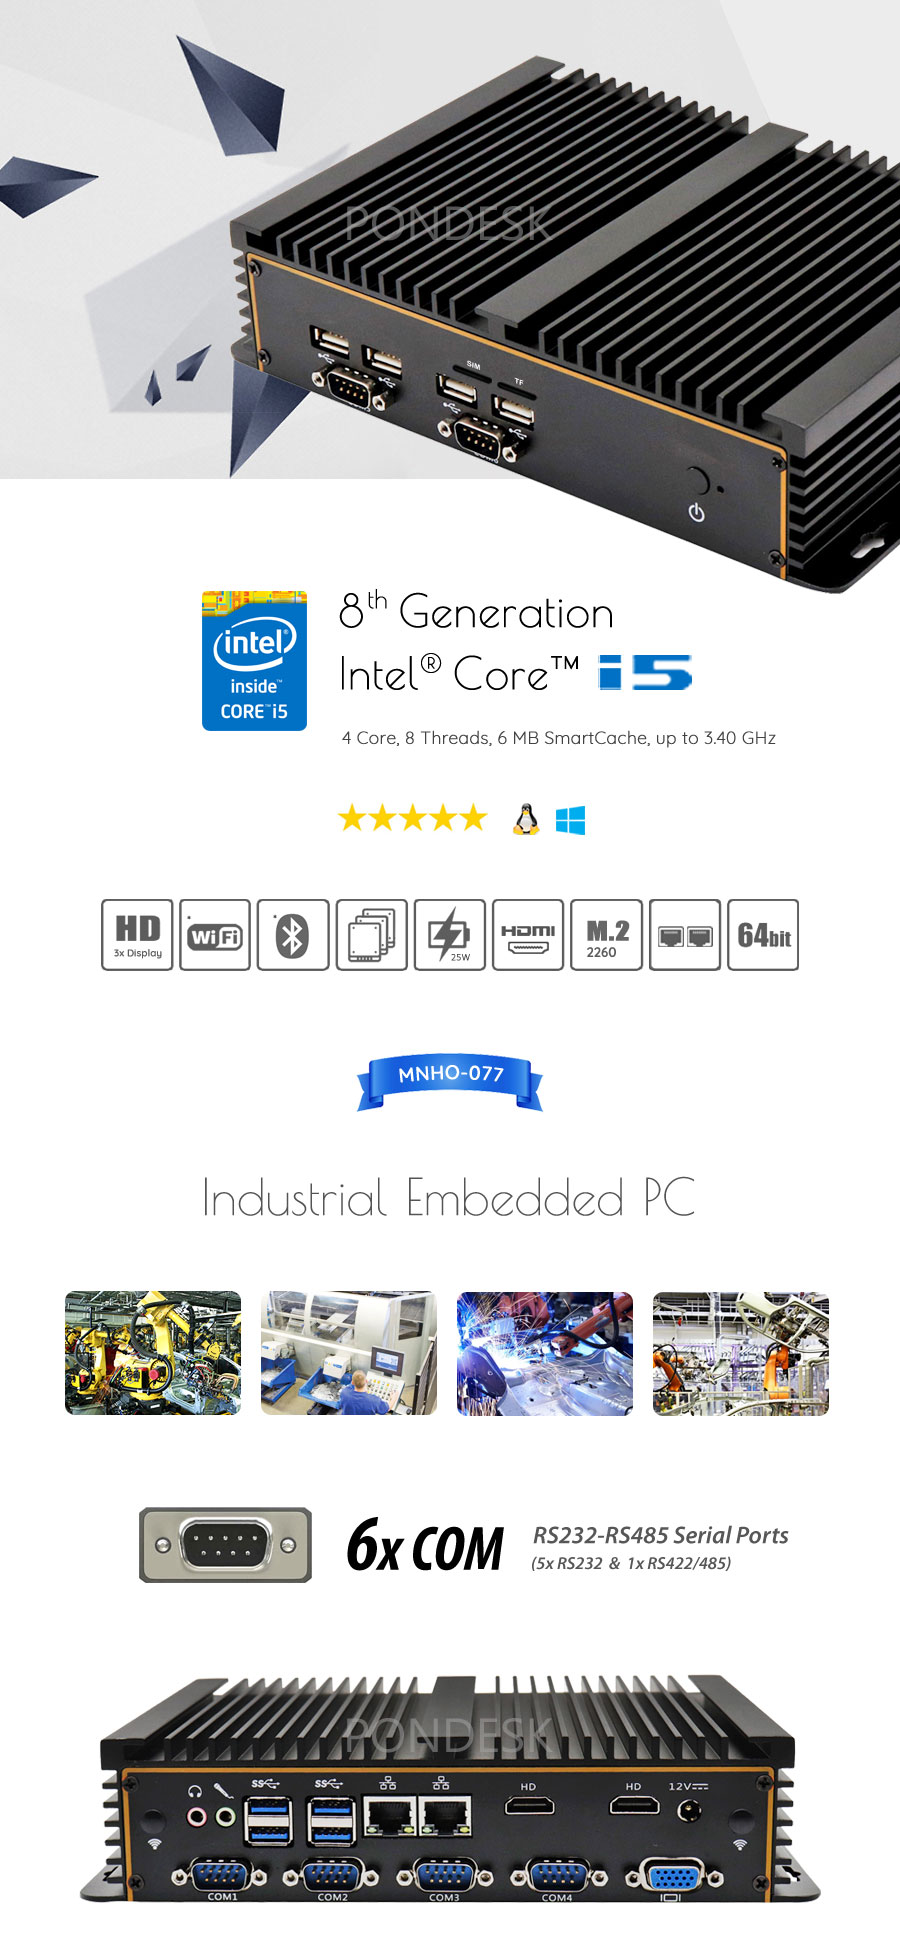 8th Gen Intel i5-8250U 6 COM 3 Display Fanless Industrial PC - MNHO-077 | Image